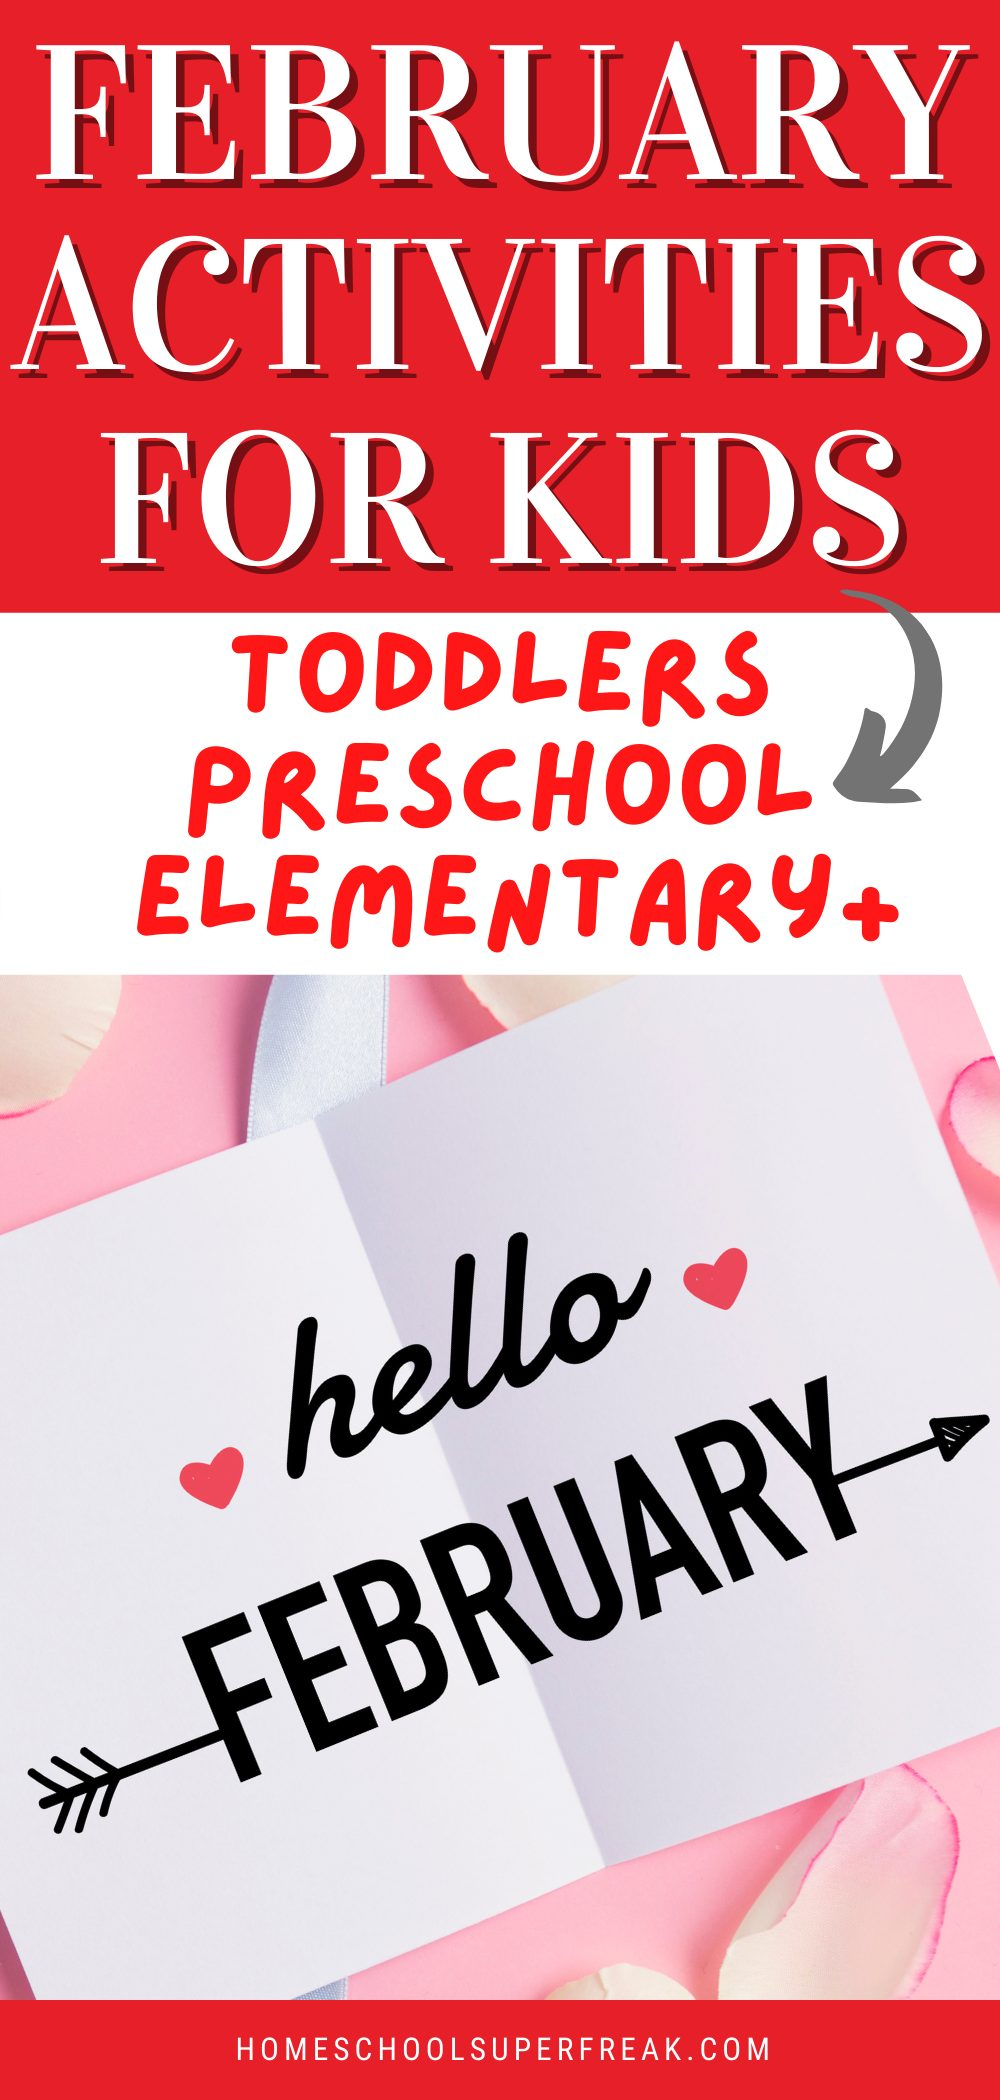 FEBRUARY ACTIVITIES FOR KIDS with sign on top of heart crafts that says hello Februrary